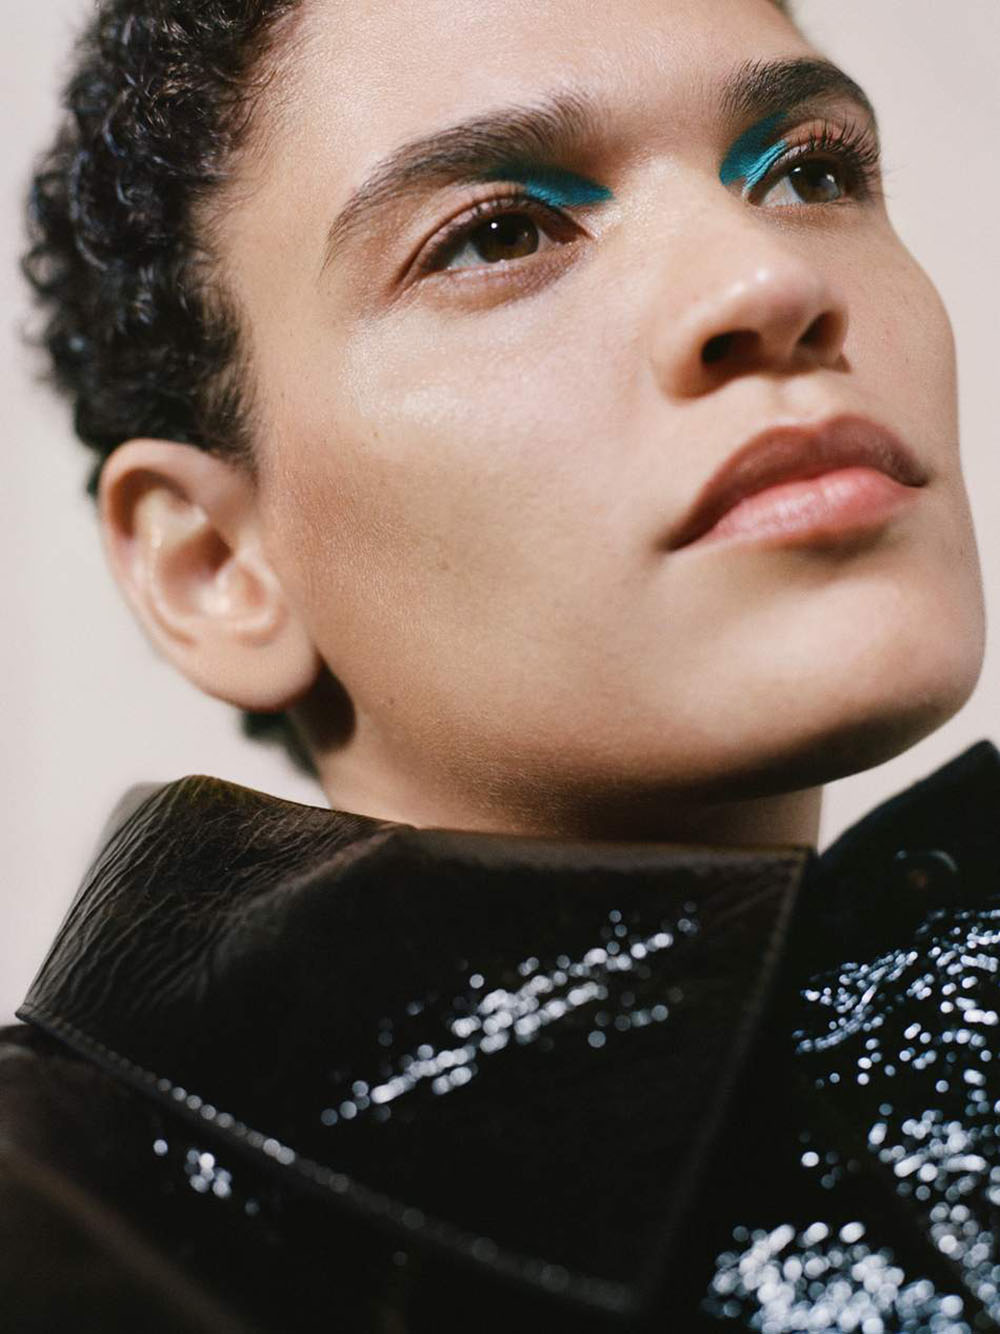 Kerolyn Soares covers Porter Magazine December 28th, 2020 by Ronan McKenzie